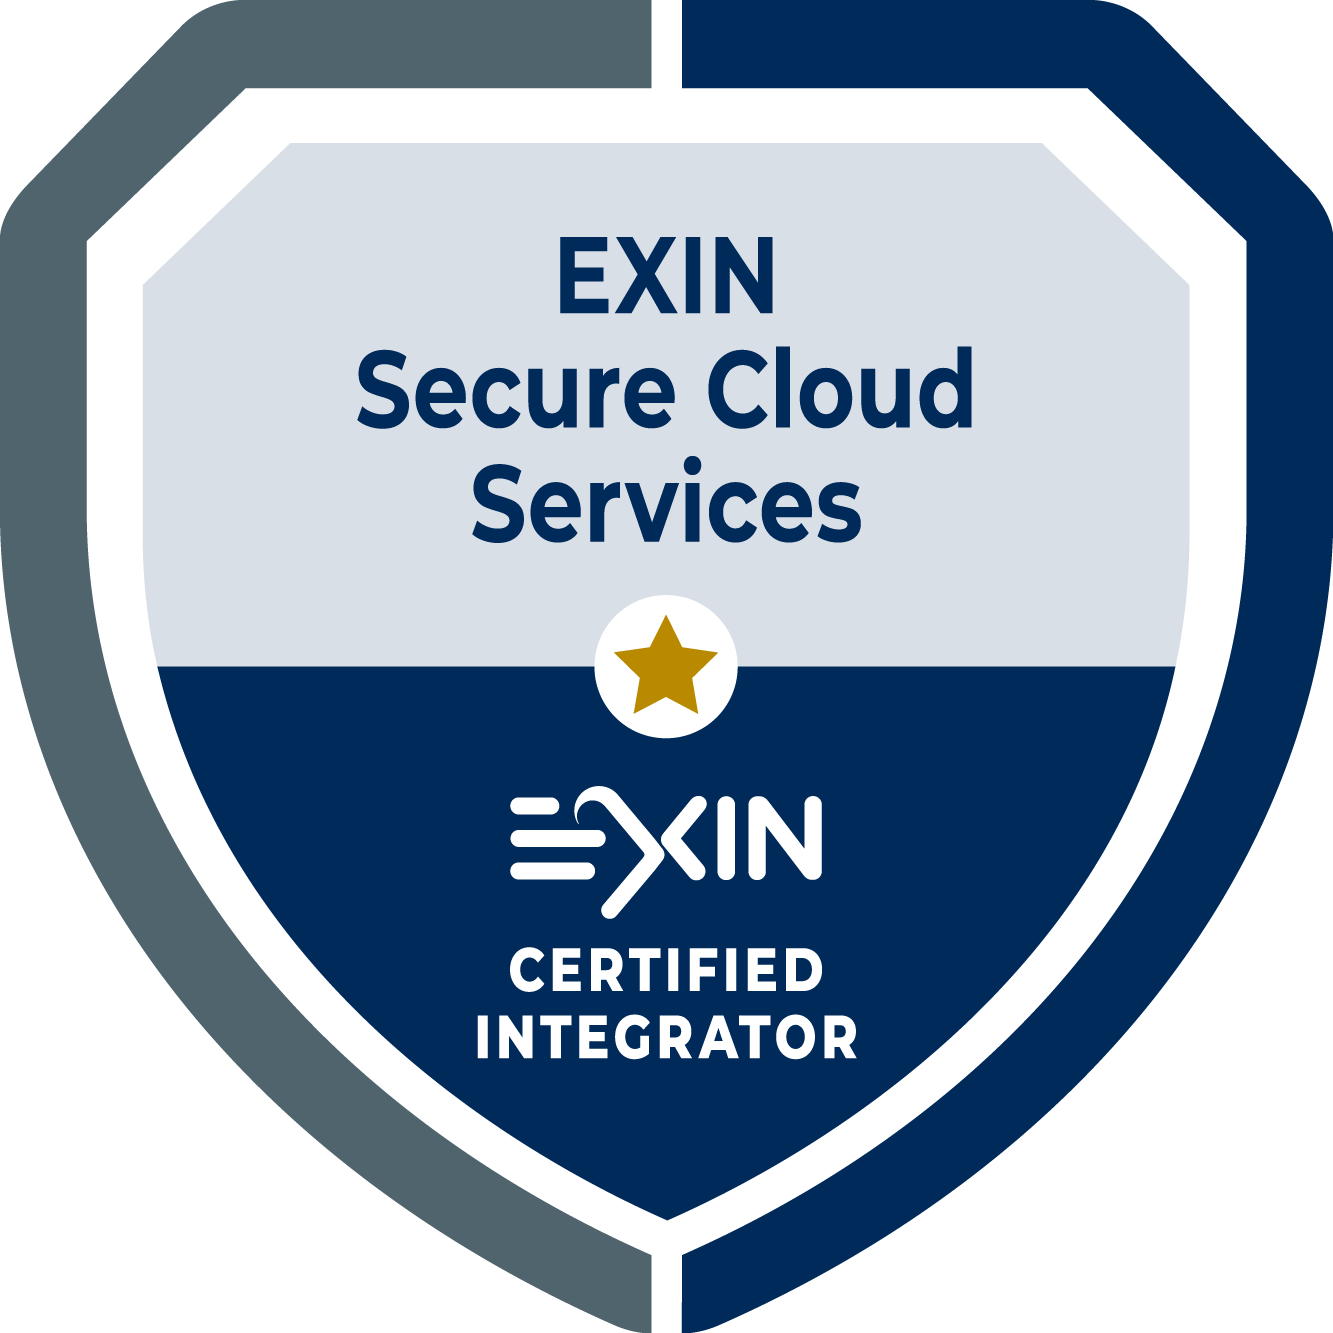 EXIN Certified Integrator in Secure Cloud Services